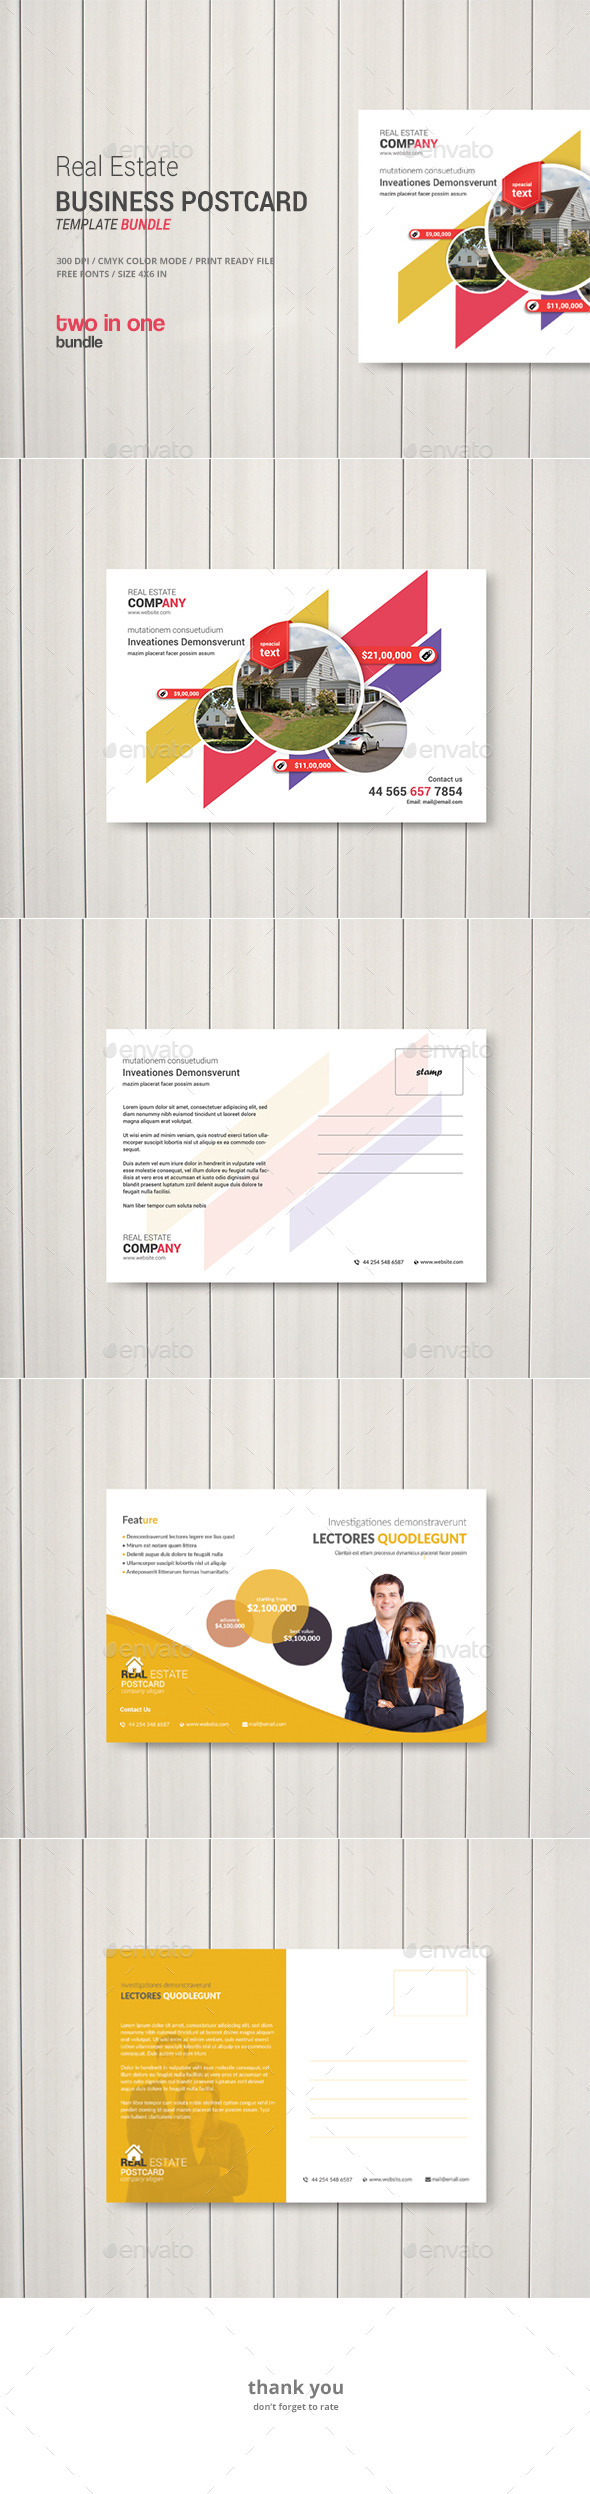 GraphicRiver Real Estate Business Postcard Bundle 2 in 1 11909234